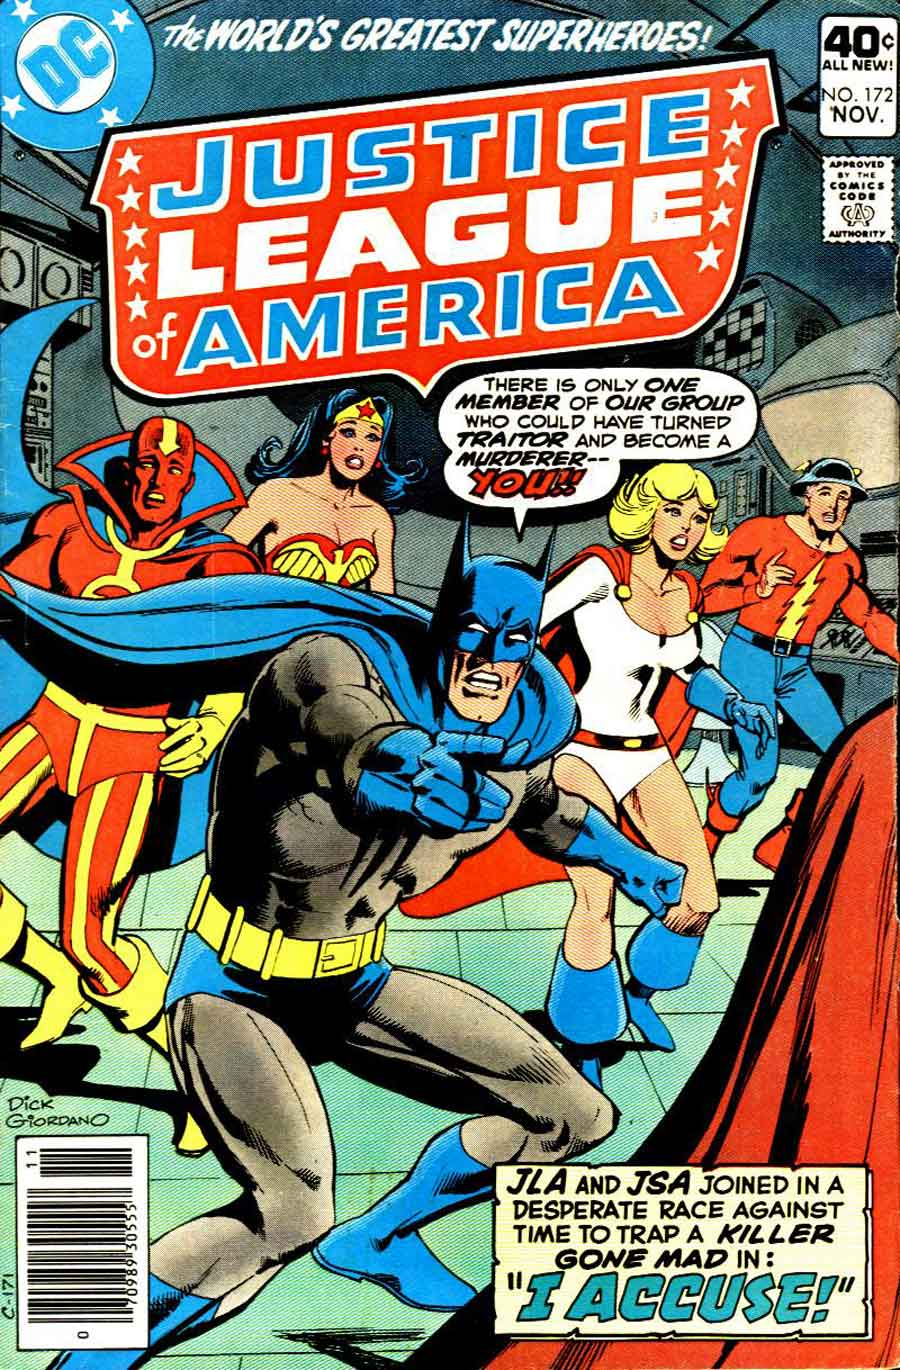 JUSTICE LEAGUE OF AMERICA #172 cover by Dick Giordano